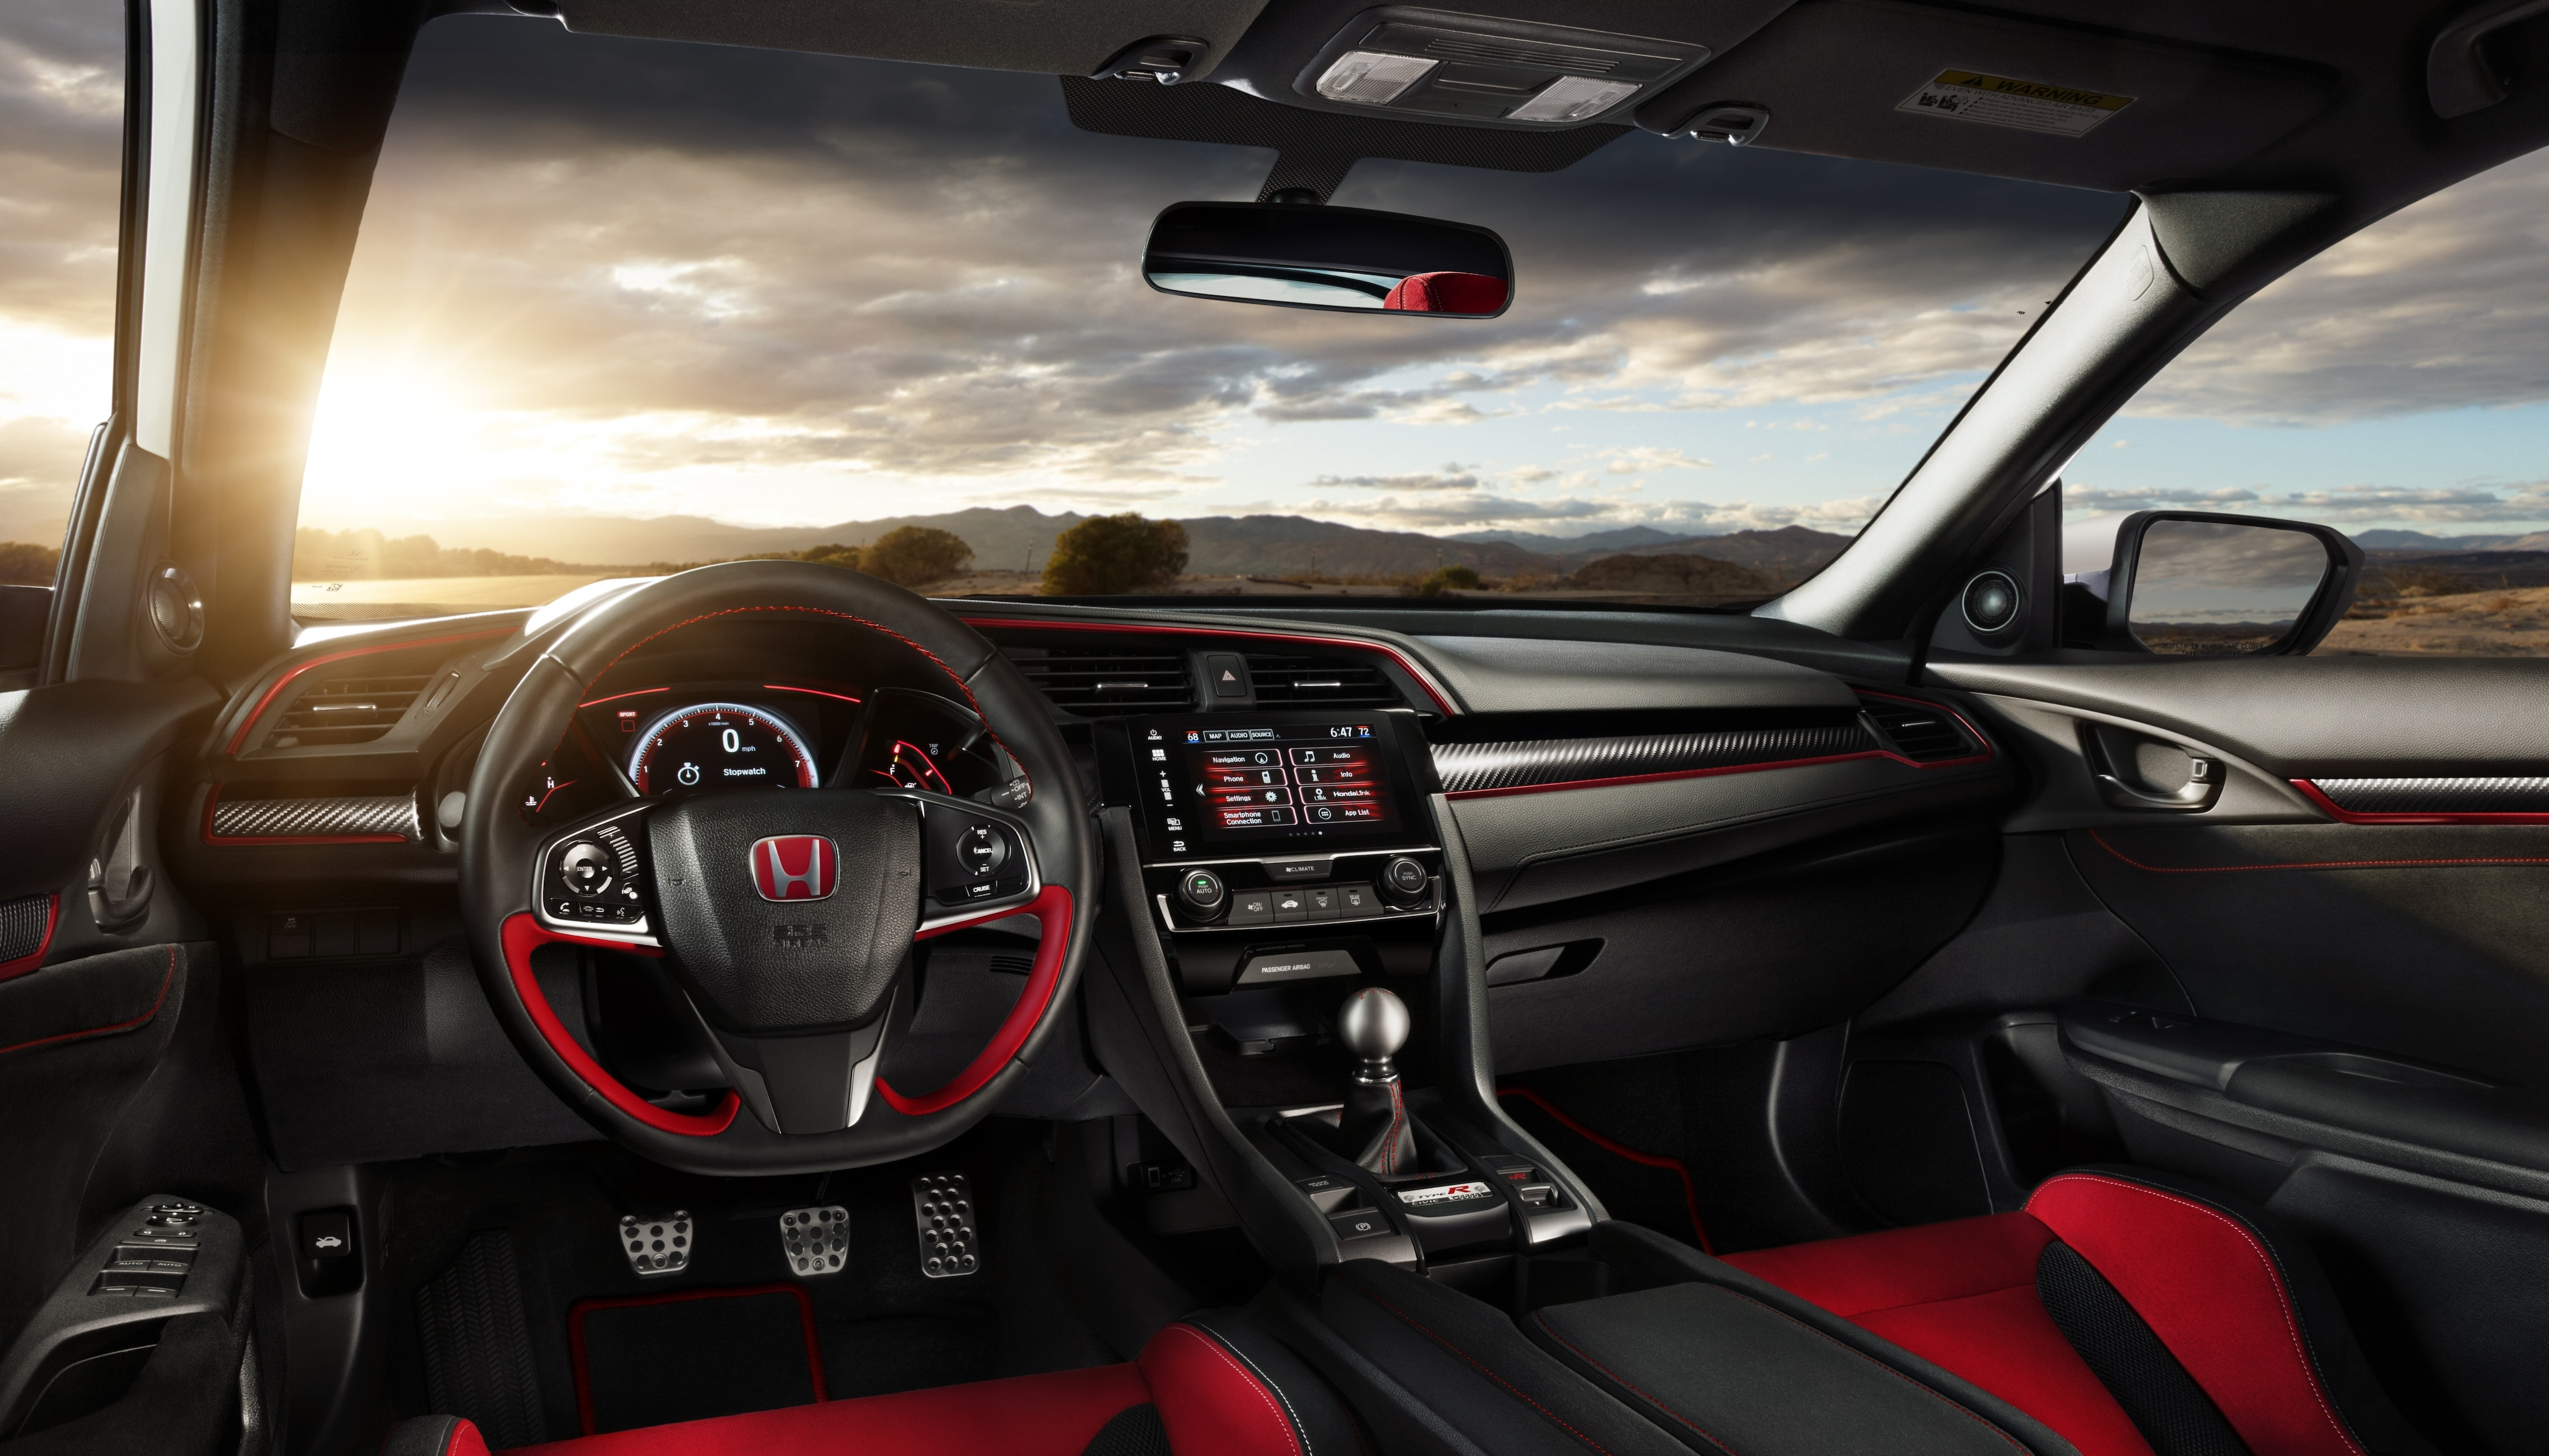 2017 Honda Civic Type R cabin